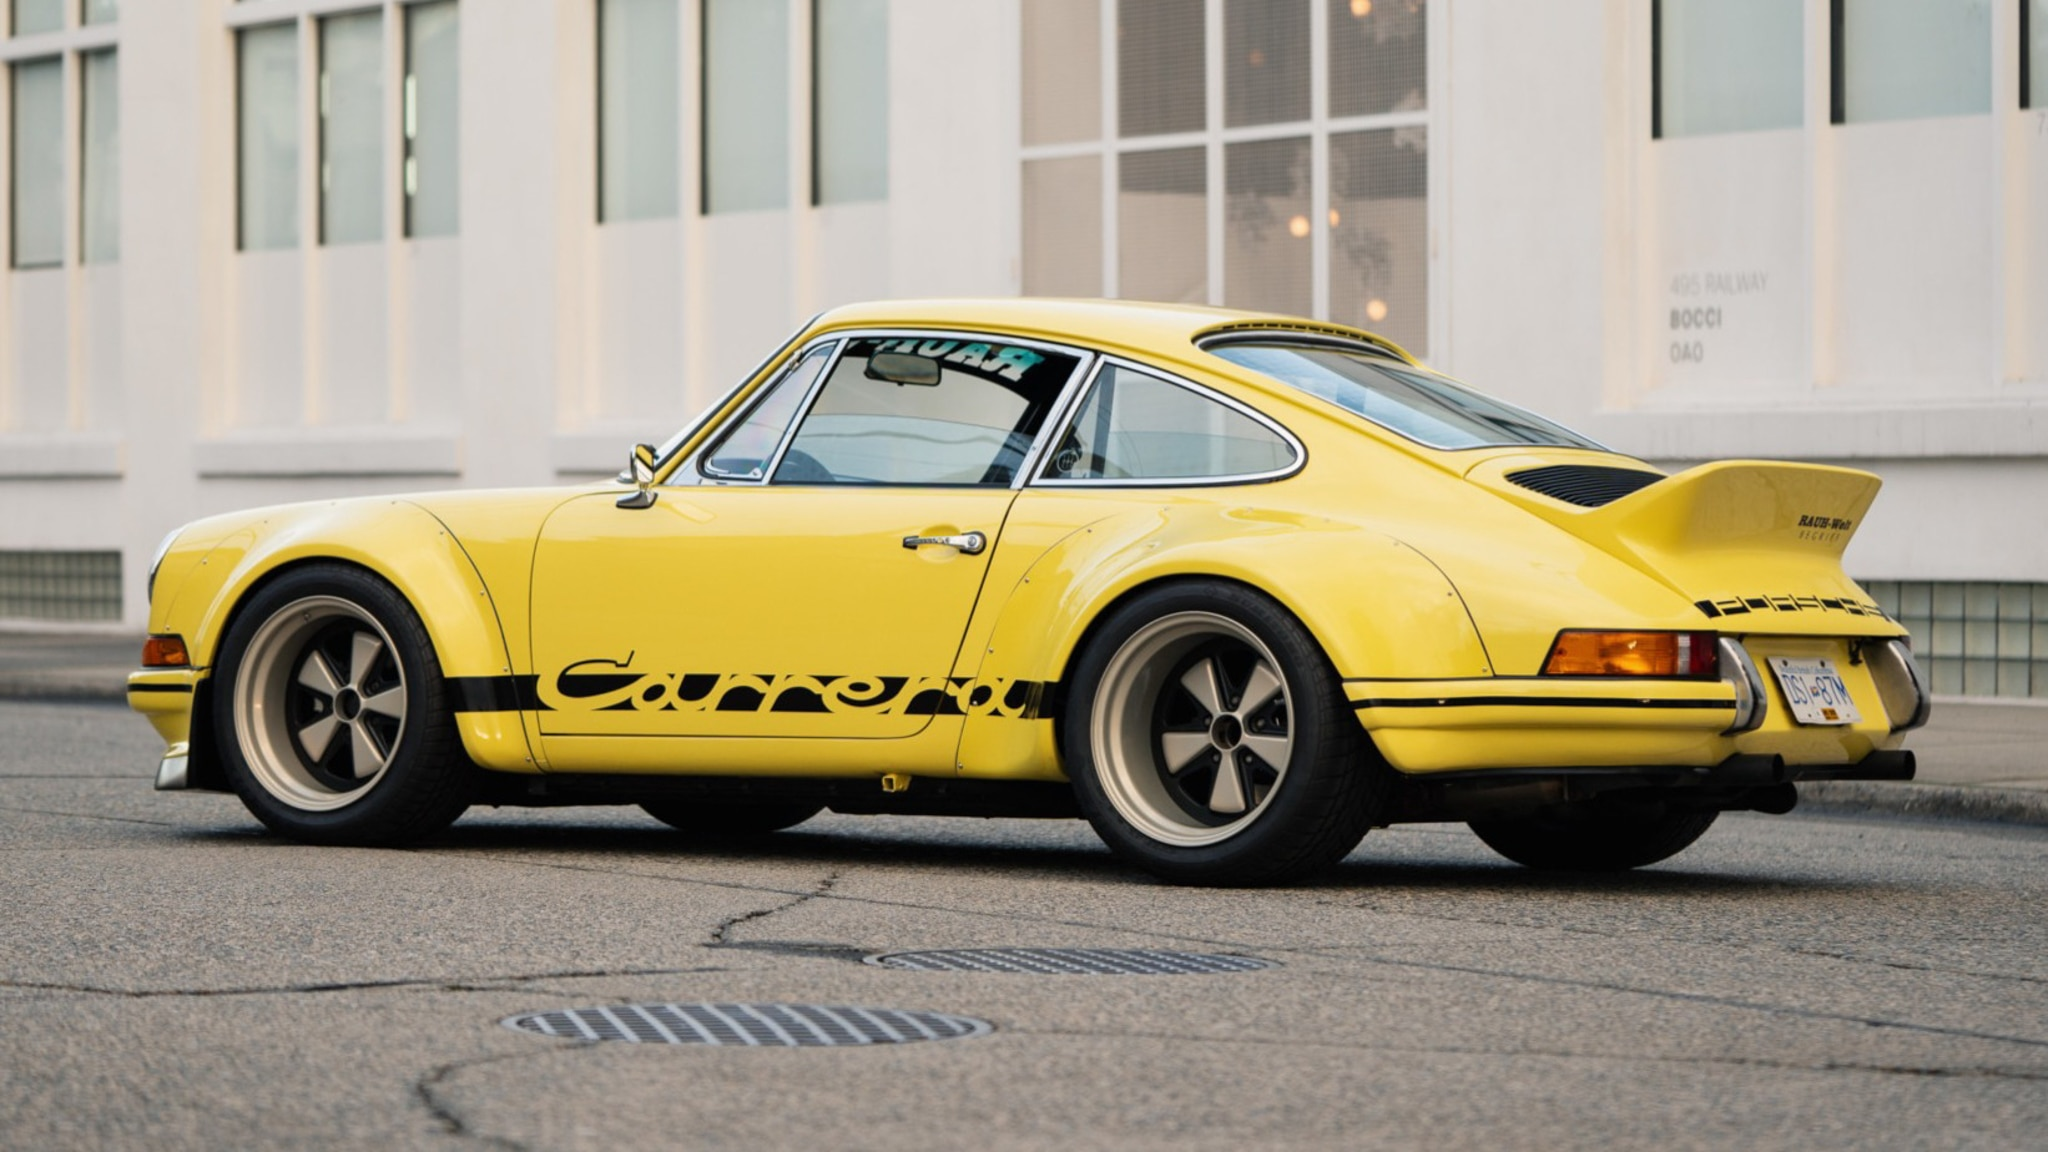 This Rwb Modified 1987 Porsche 911 Carrera Is For Sale Now